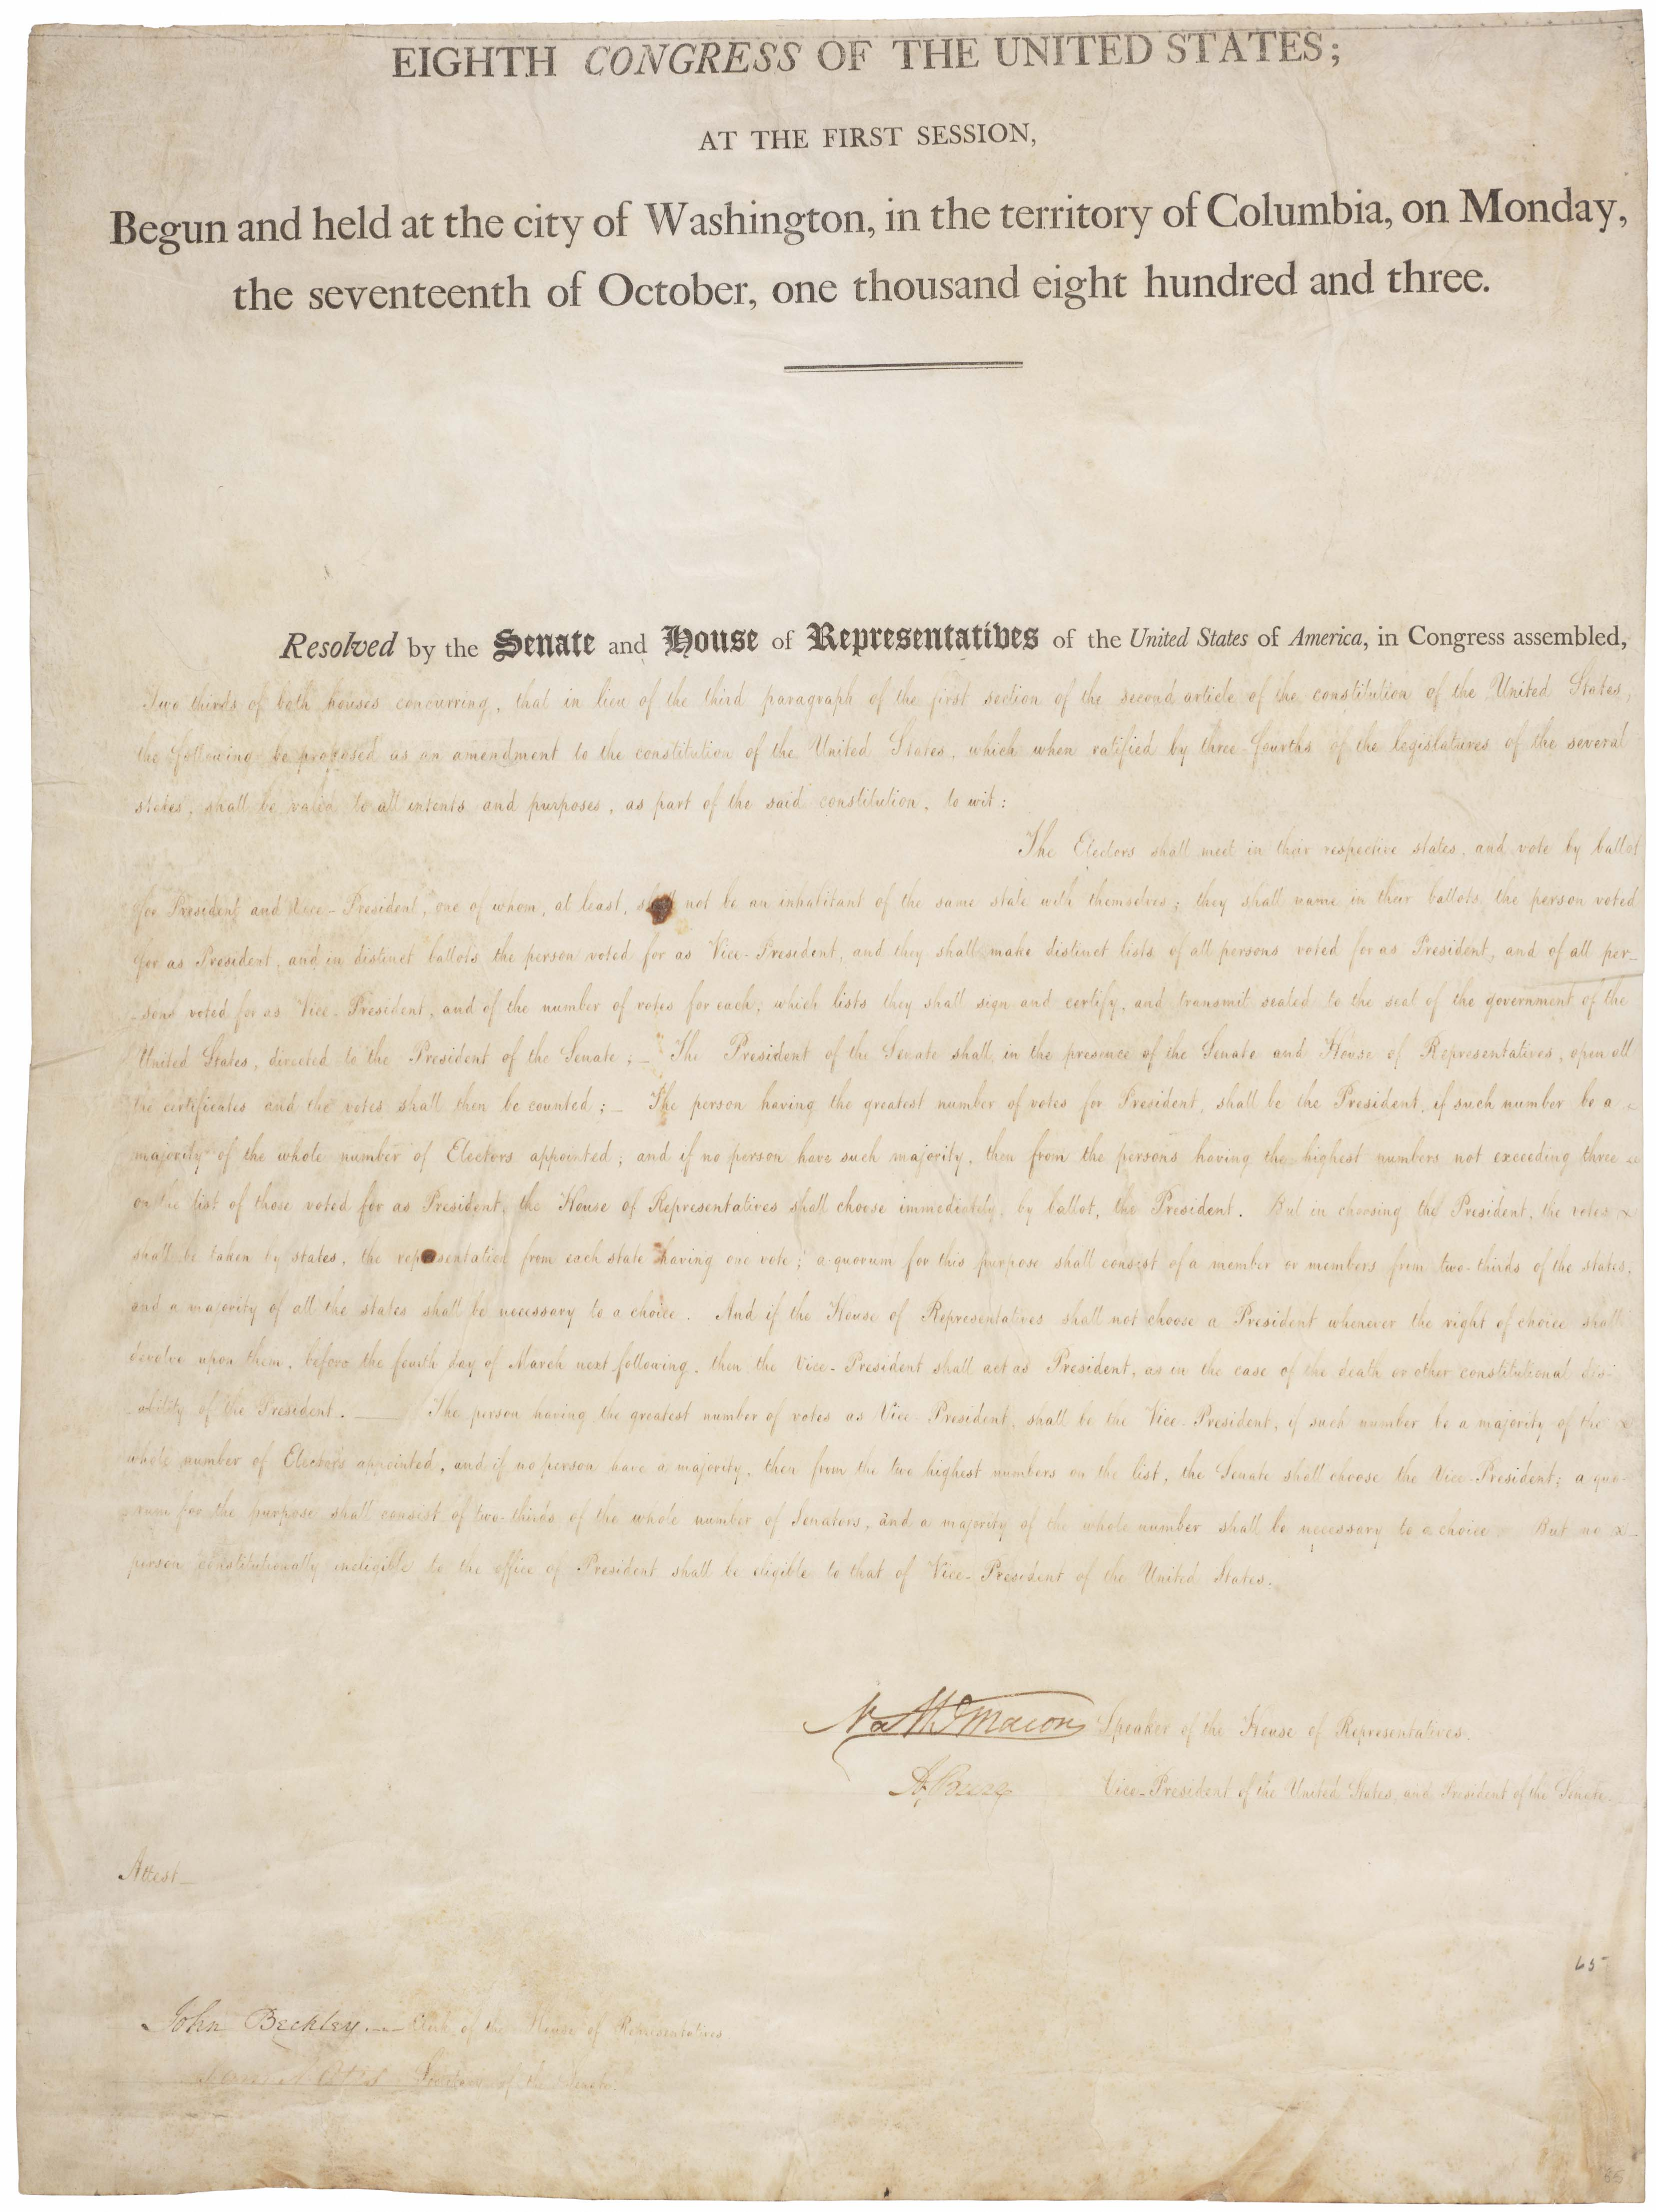 a history of the constitution in the united states Bill of rights of the united states of america (1791) download a pdf of the bill of rights the first 10 amendments to the constitution make up the bill of rights.